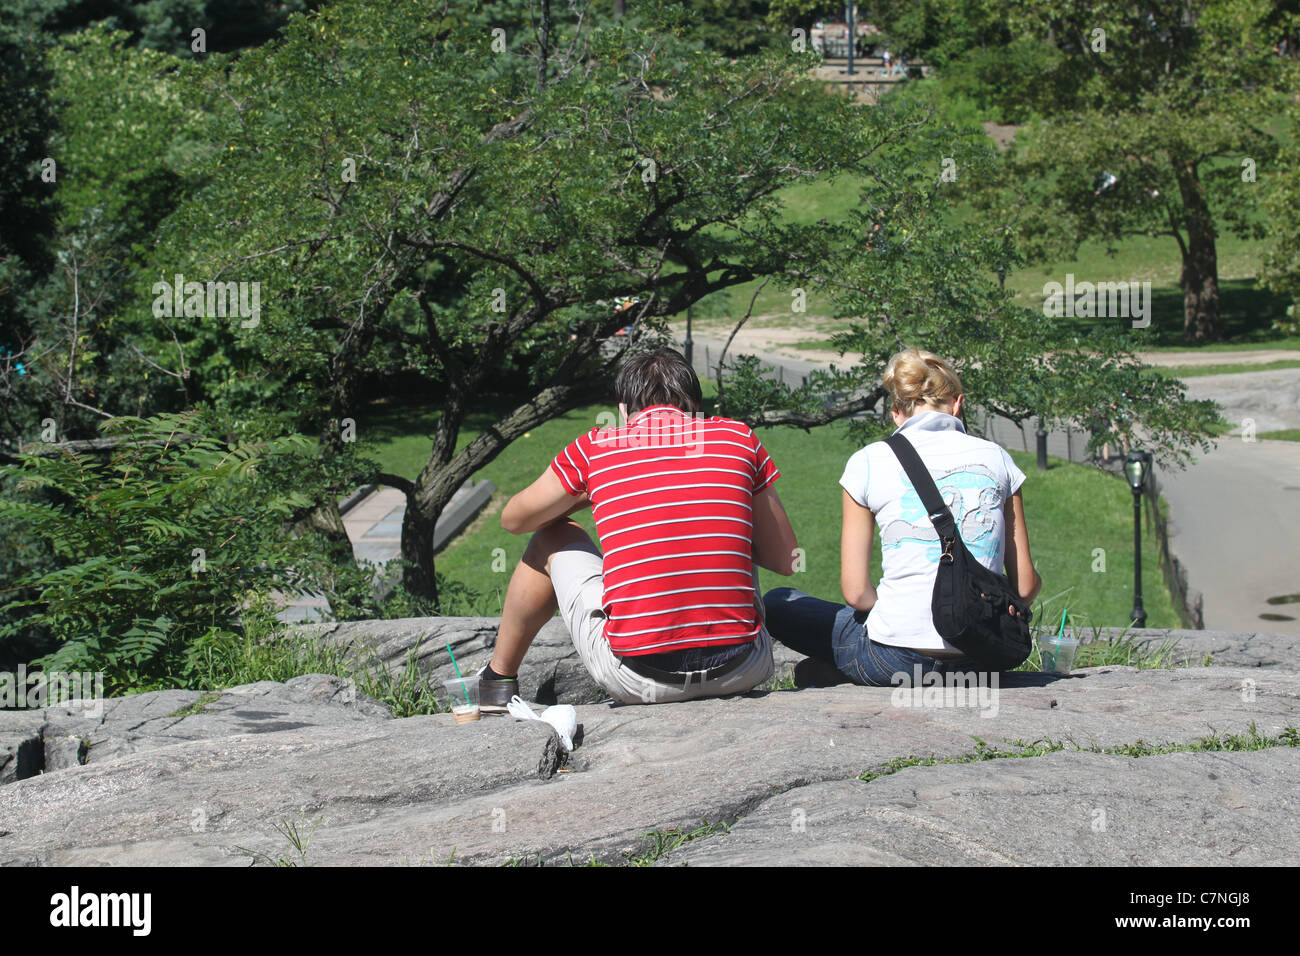 A couple sitting together in Central Park Stock Photo